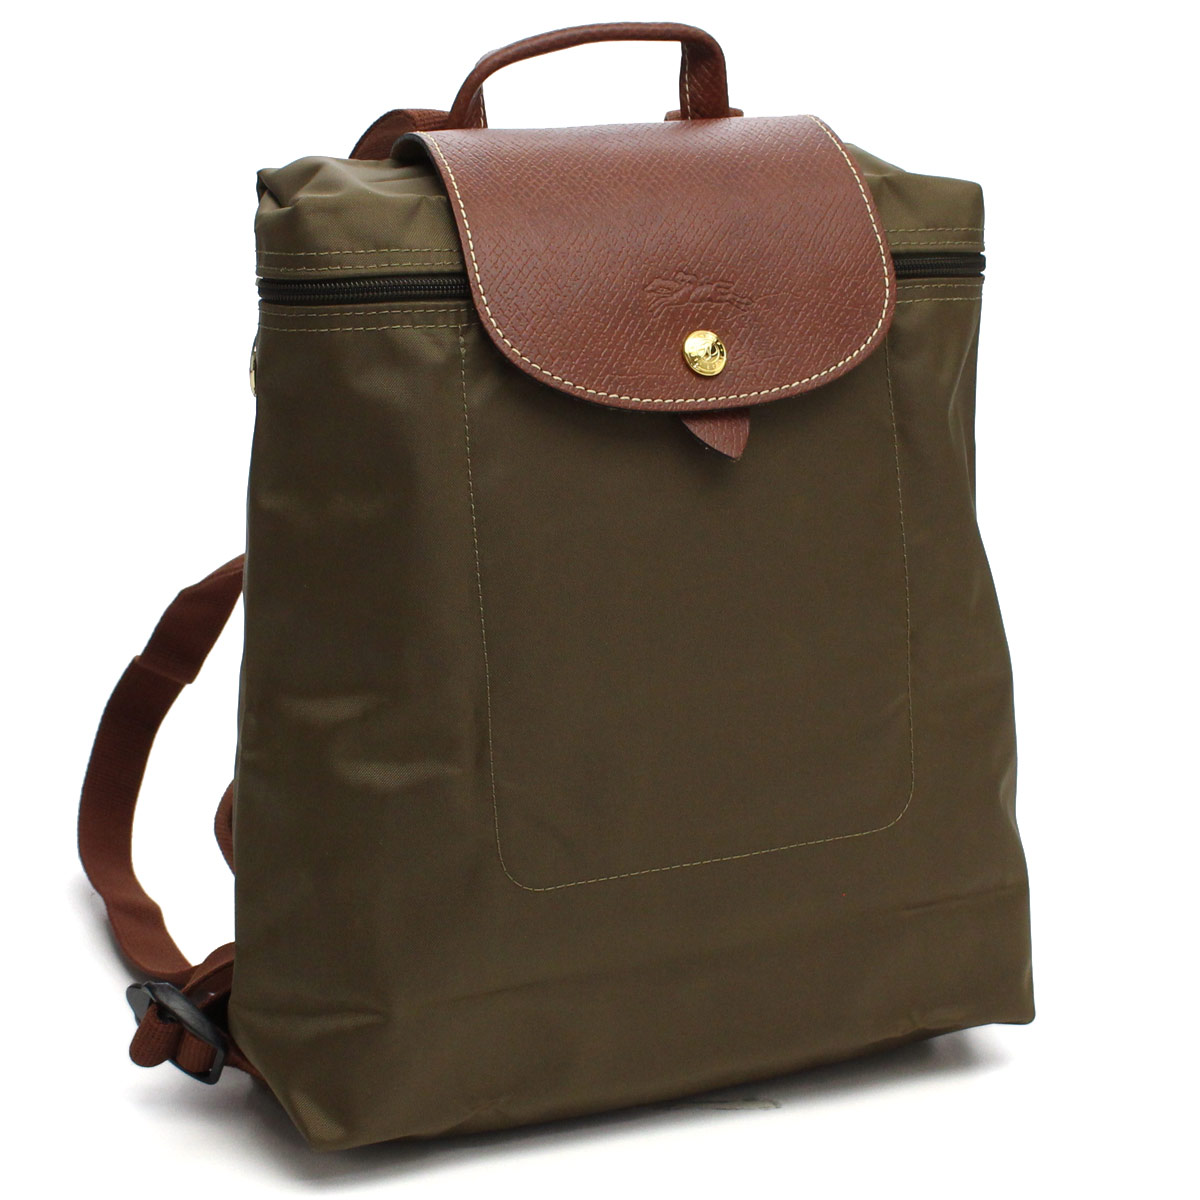 954452cf655 Bighit The total brand wholesale  Longchamp (LONGCHAMP) LE PLIAGE le  プリアージュバックパックリュック 1699 089 A23 green system   Rakuten Global Market